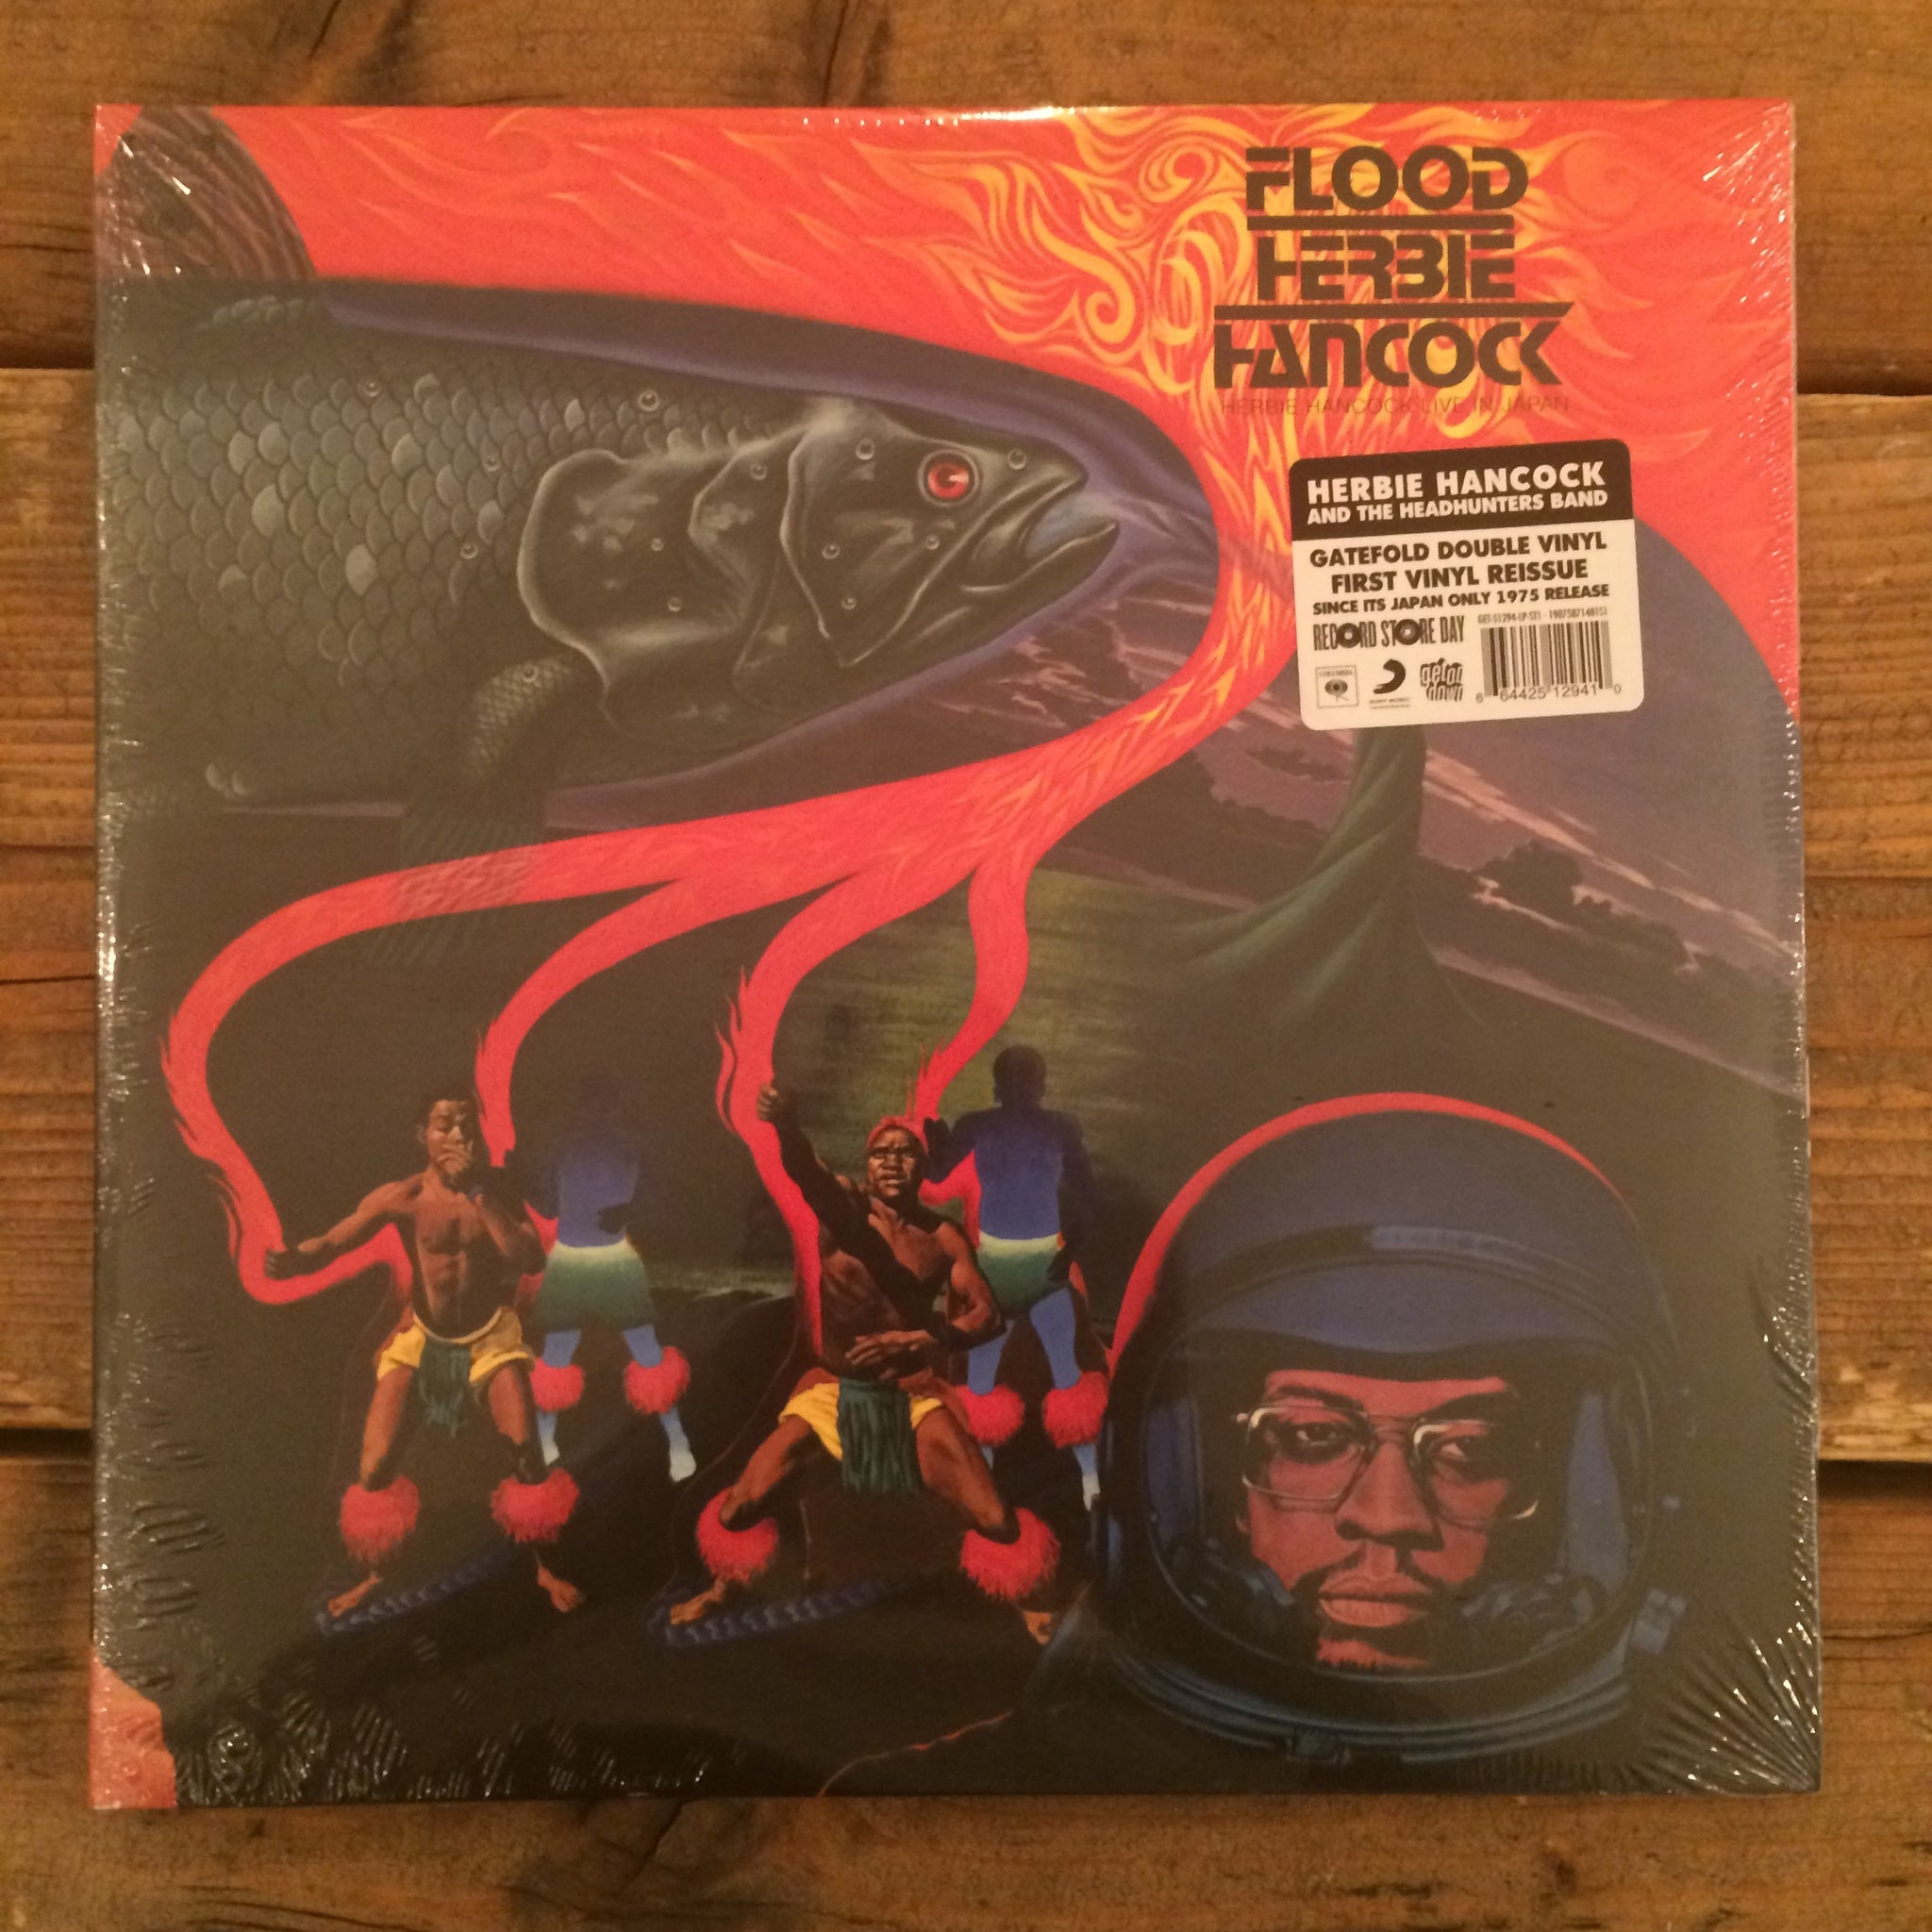 Herbie Hancock - Flood